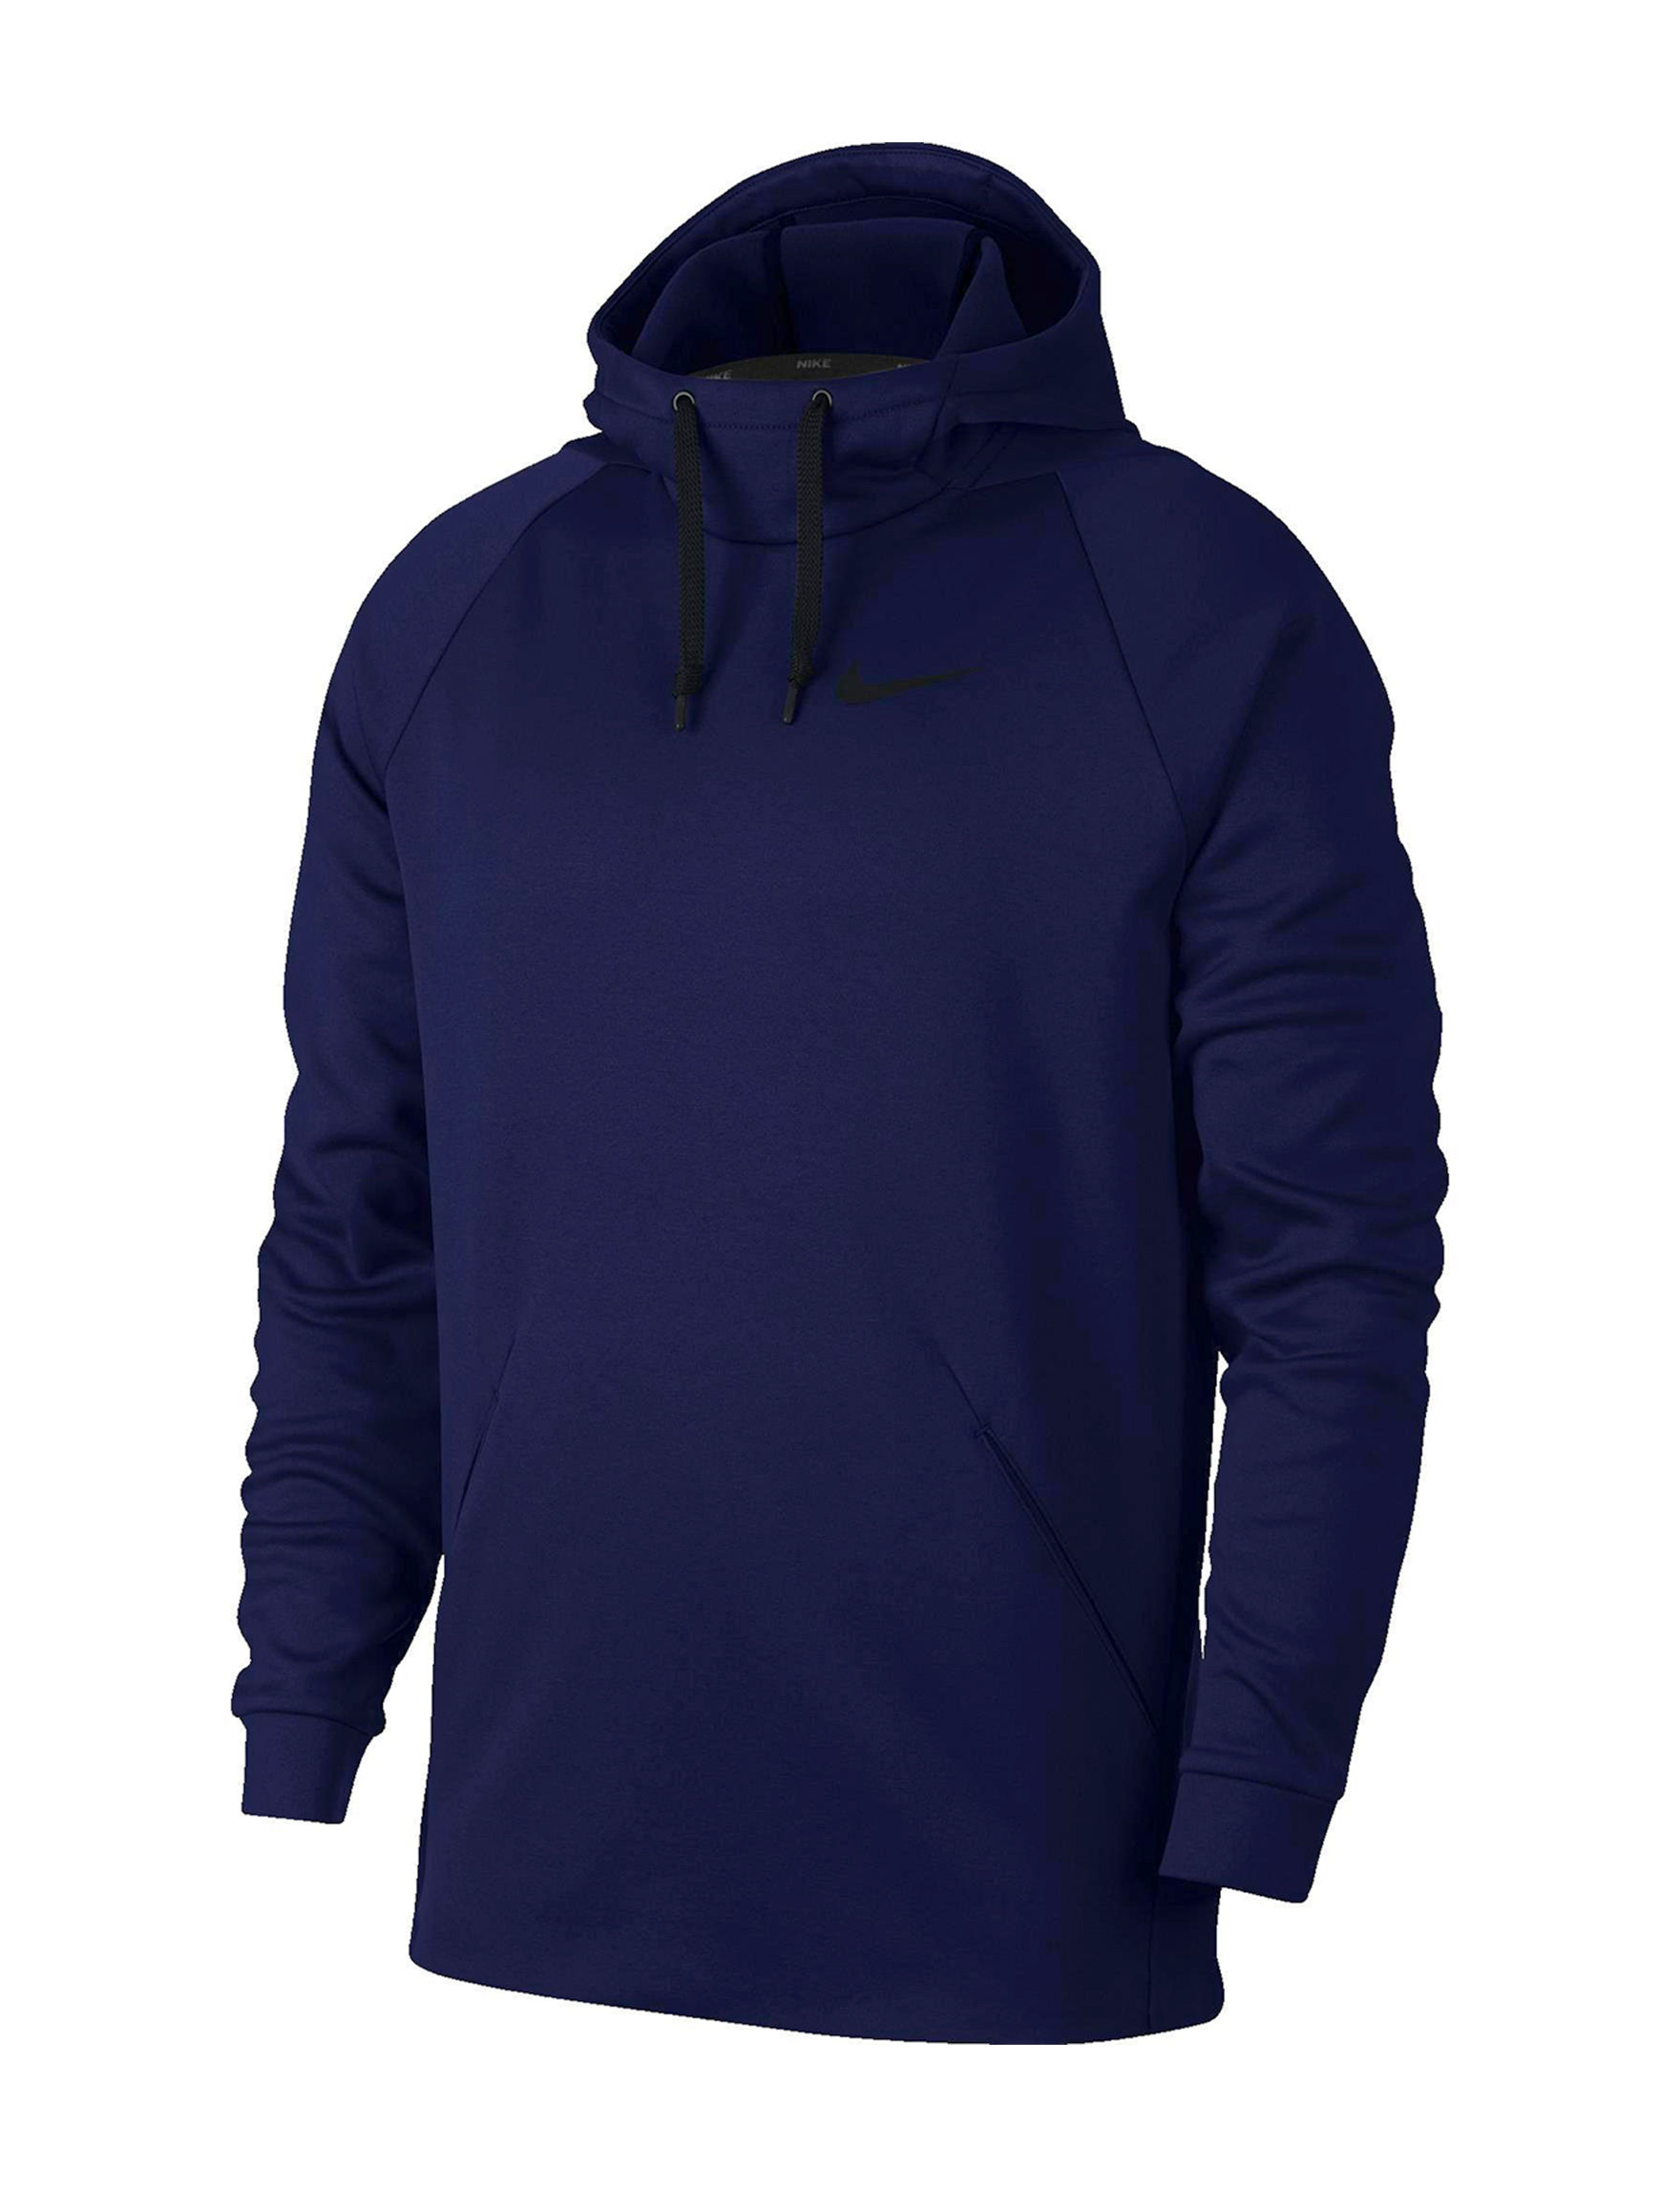 Nike Navy Pull-overs